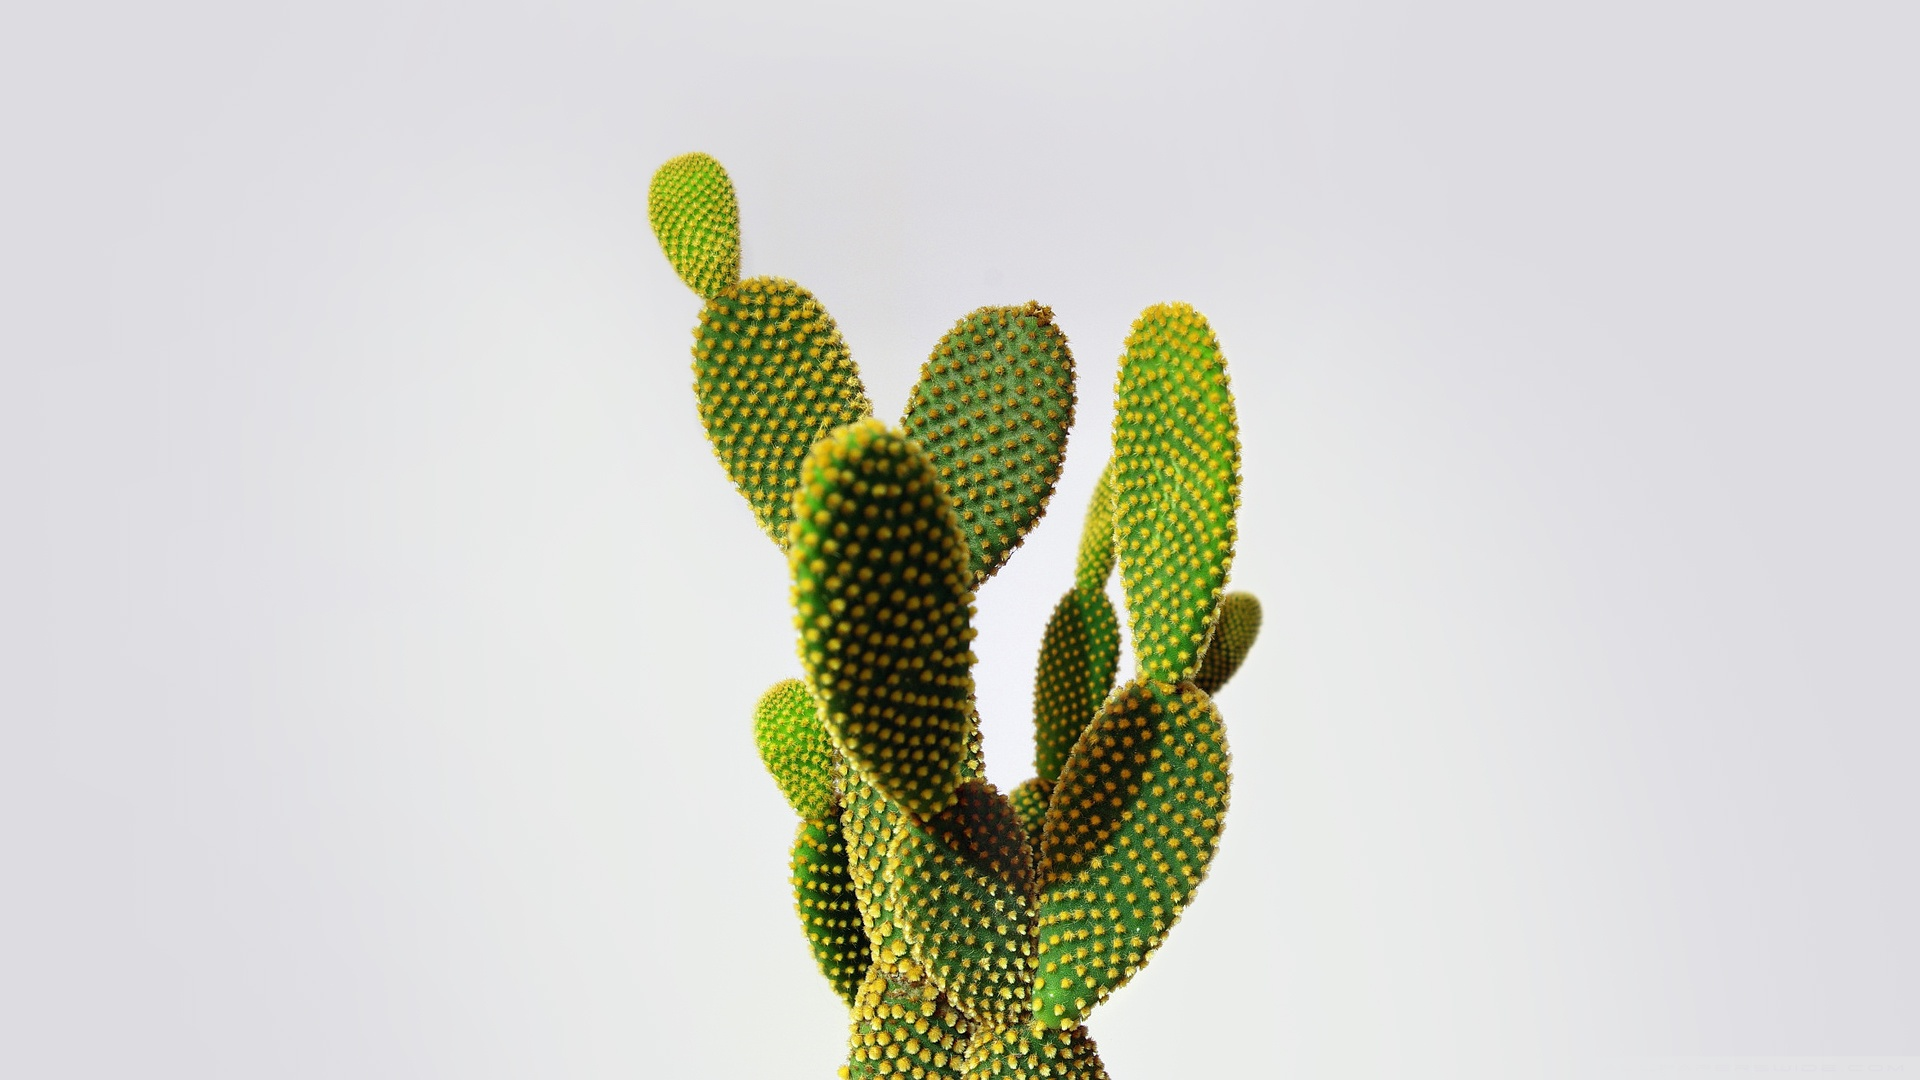 Interesting Shape of Cactus Leaves 116.26 Kb